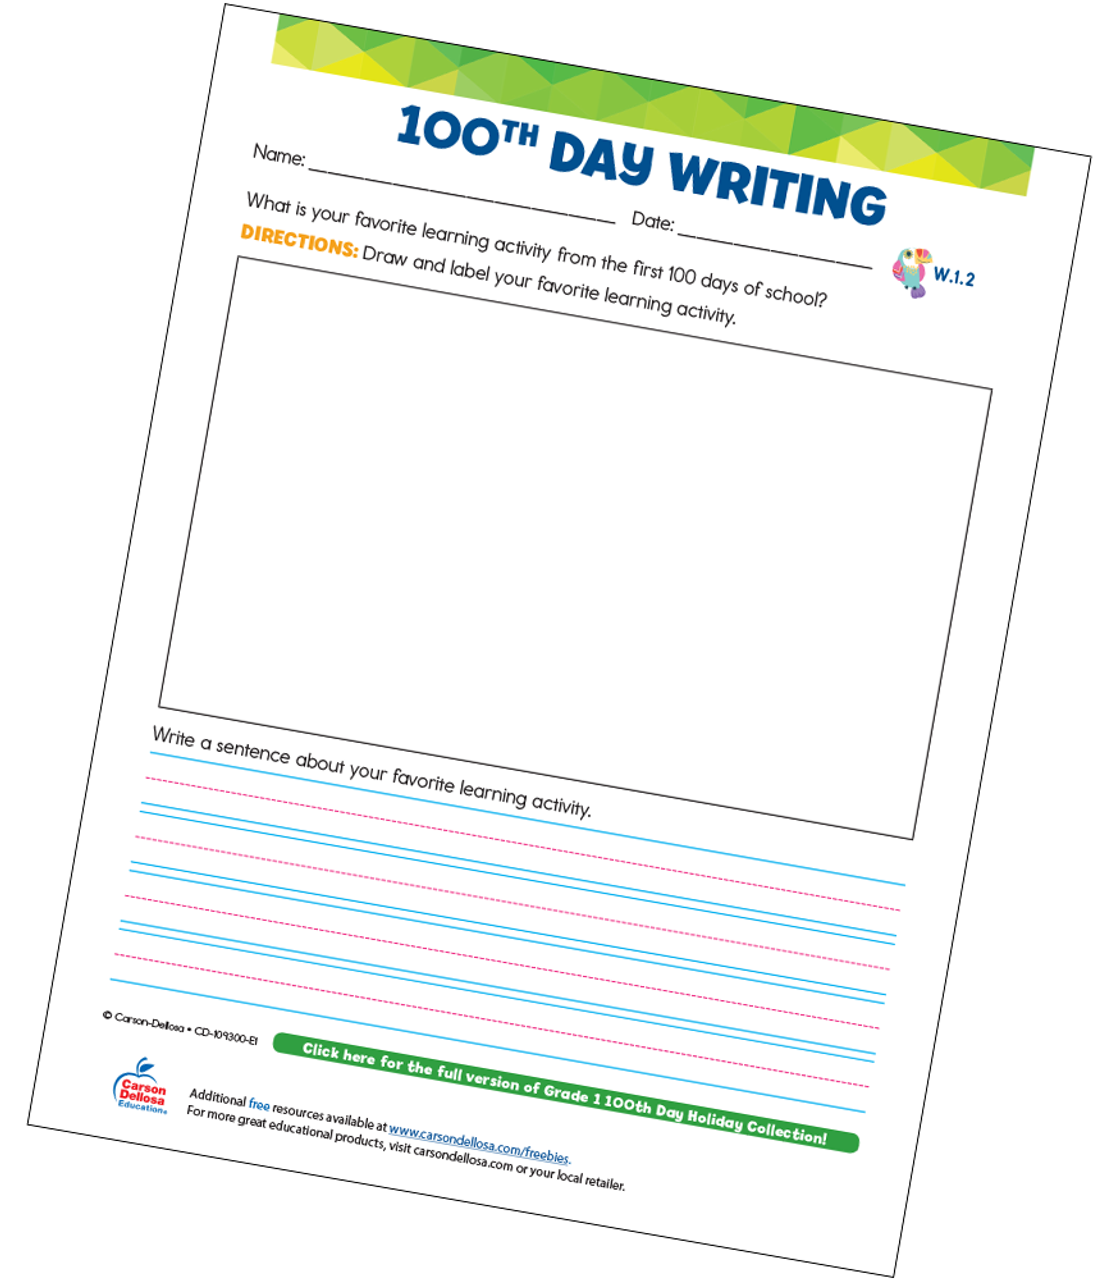 photo relating to Writing Prompt Printable named 100th Working day Producing Advised Quality 1 Absolutely free Printable Carson Dellosa